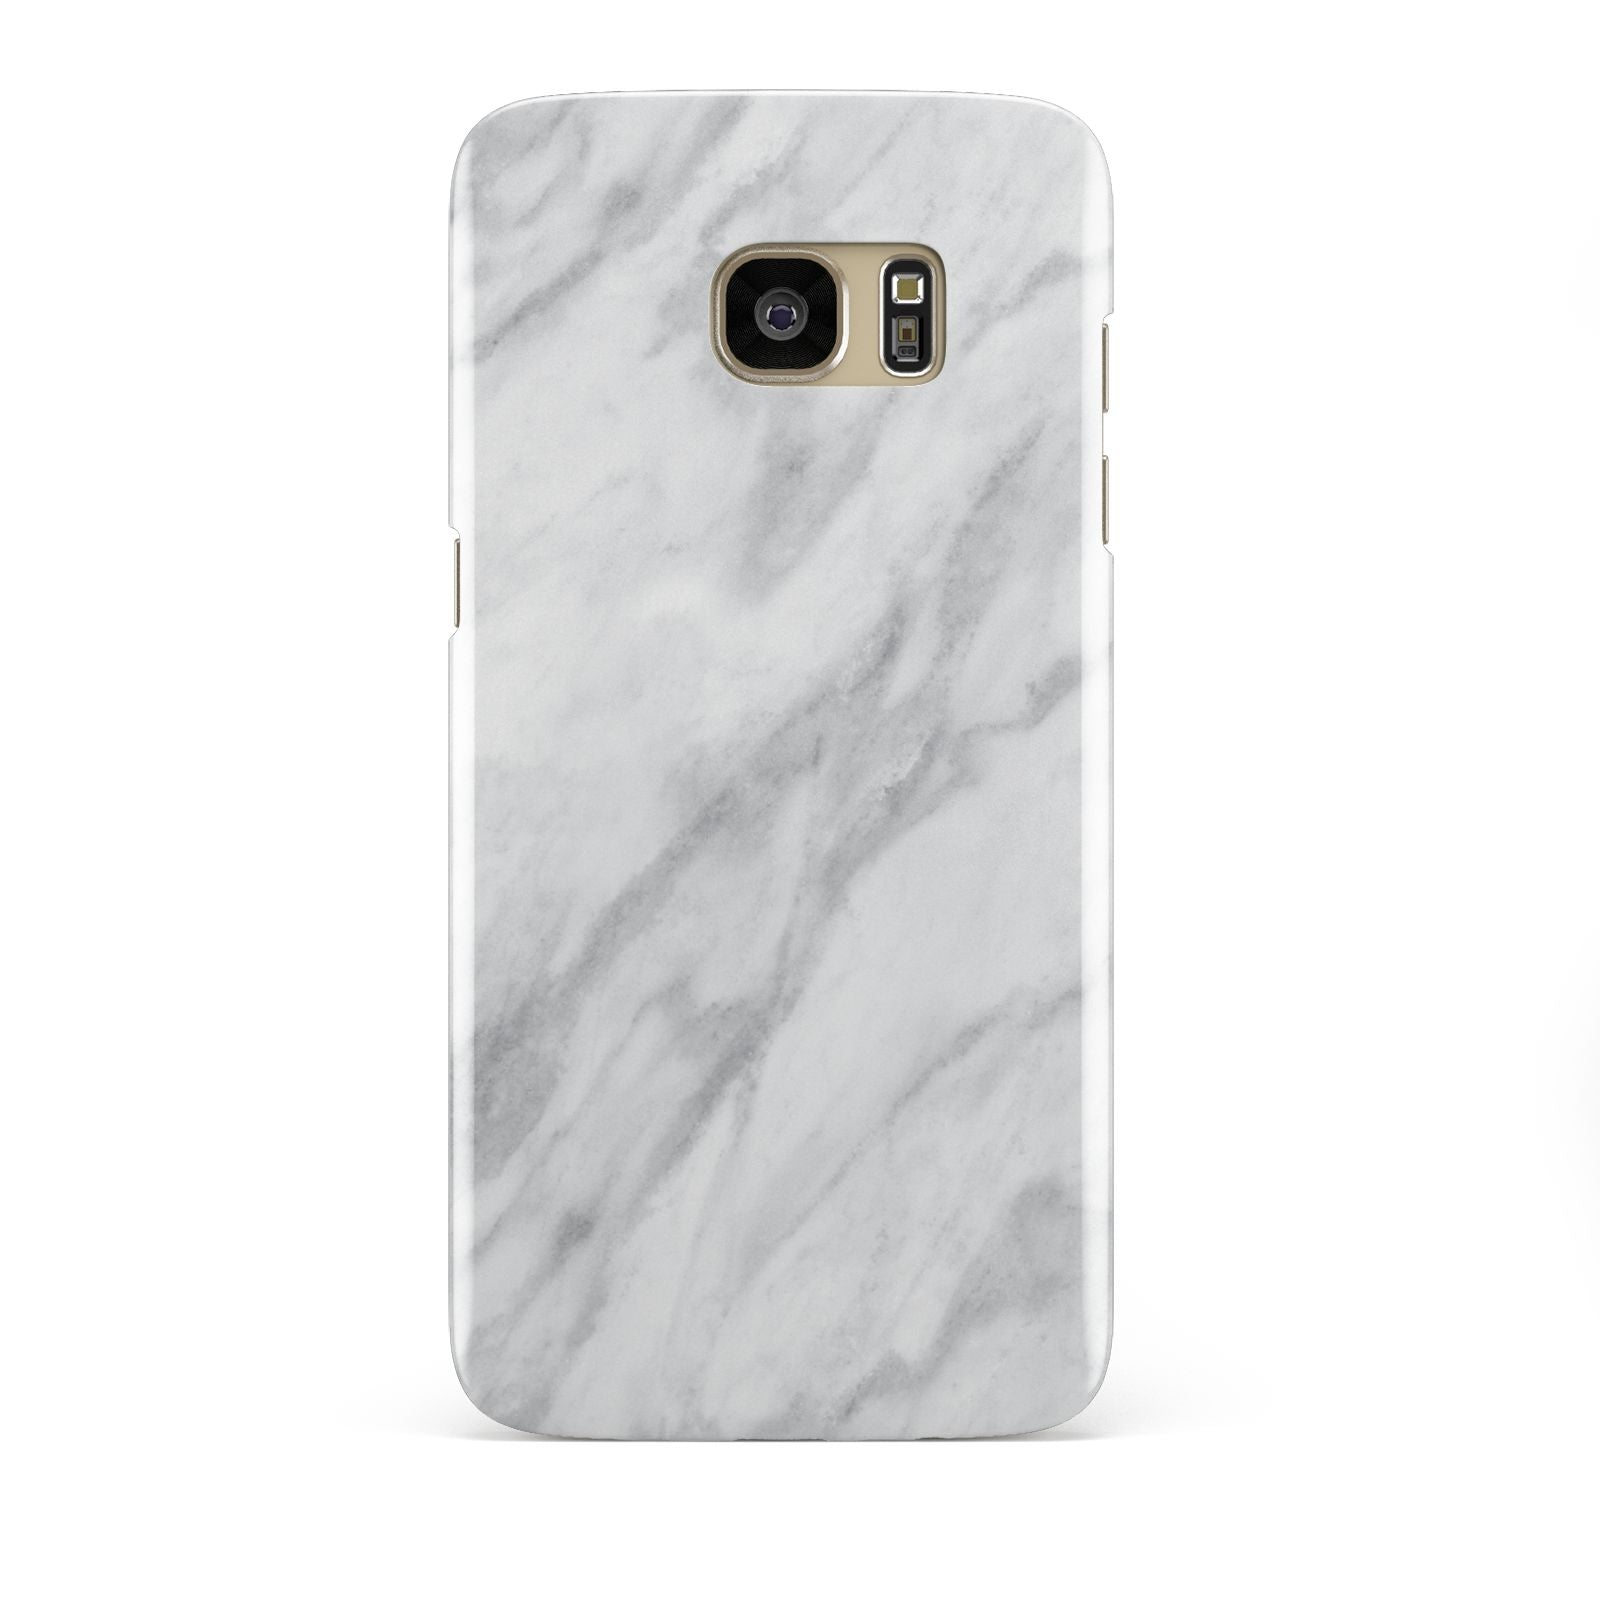 Faux Marble Effect Italian Samsung Galaxy S7 Edge Case